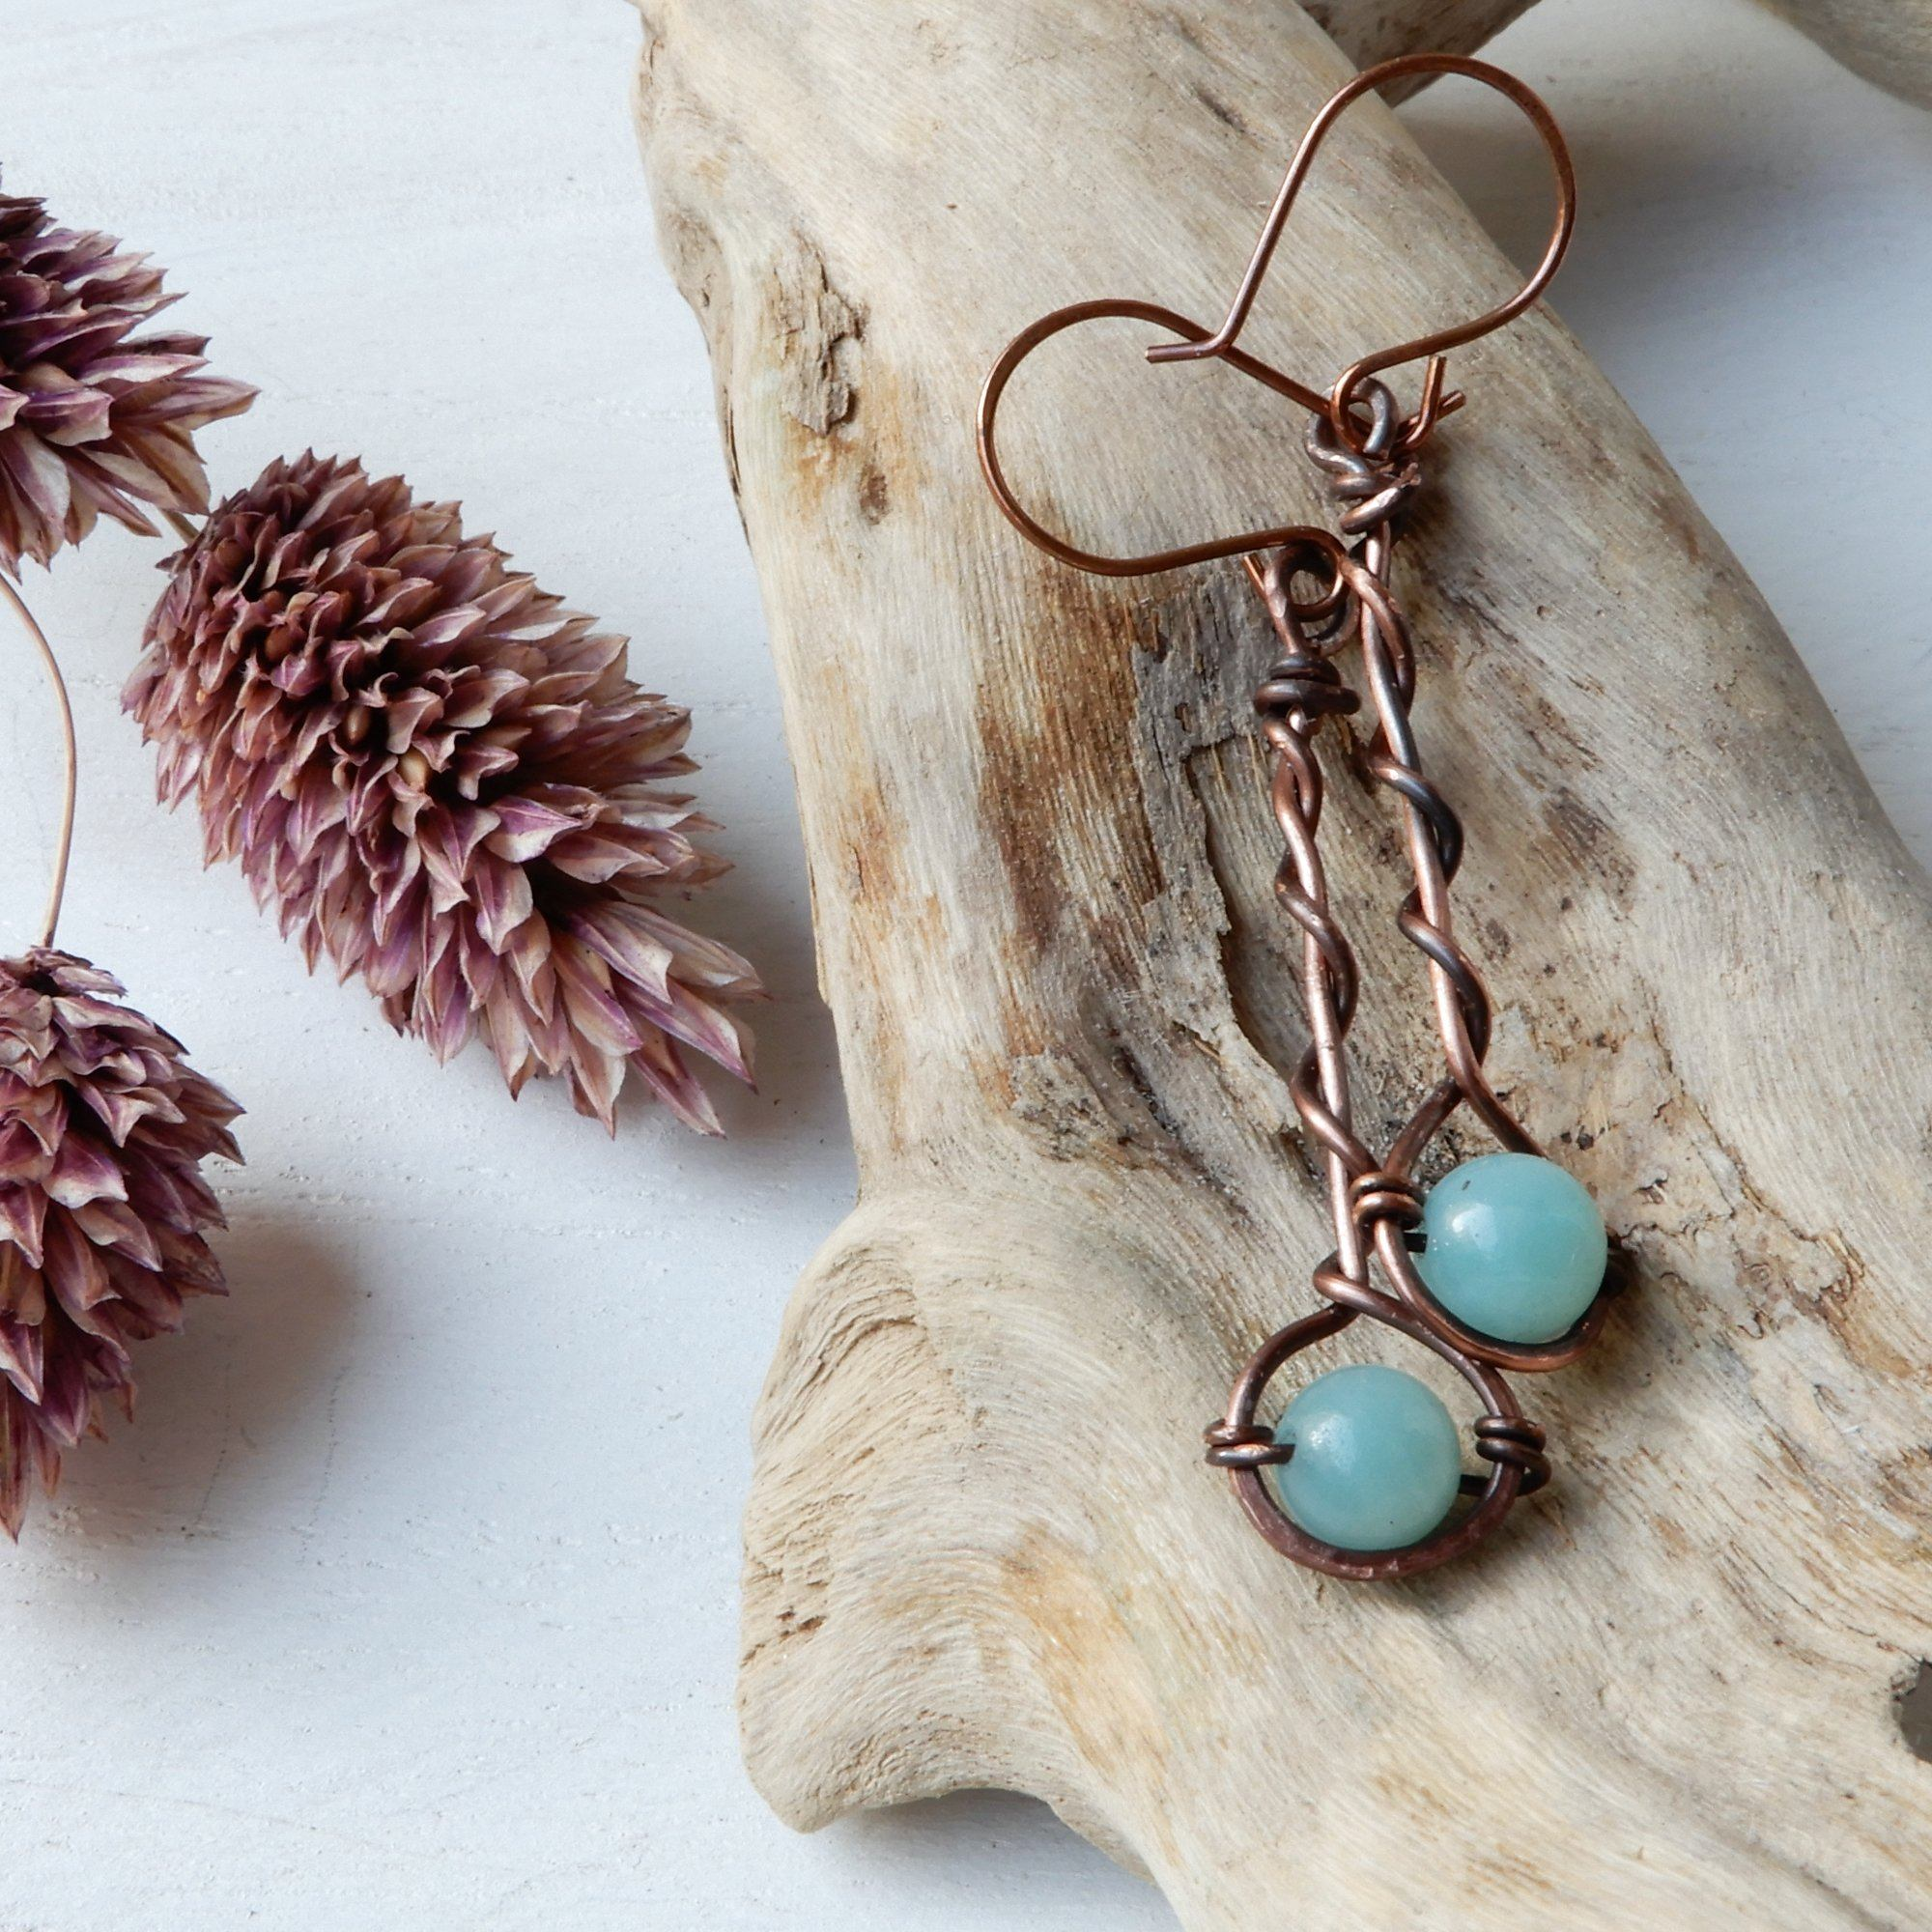 Earring - Twisted Bar Drop Earrings With Stone Accent